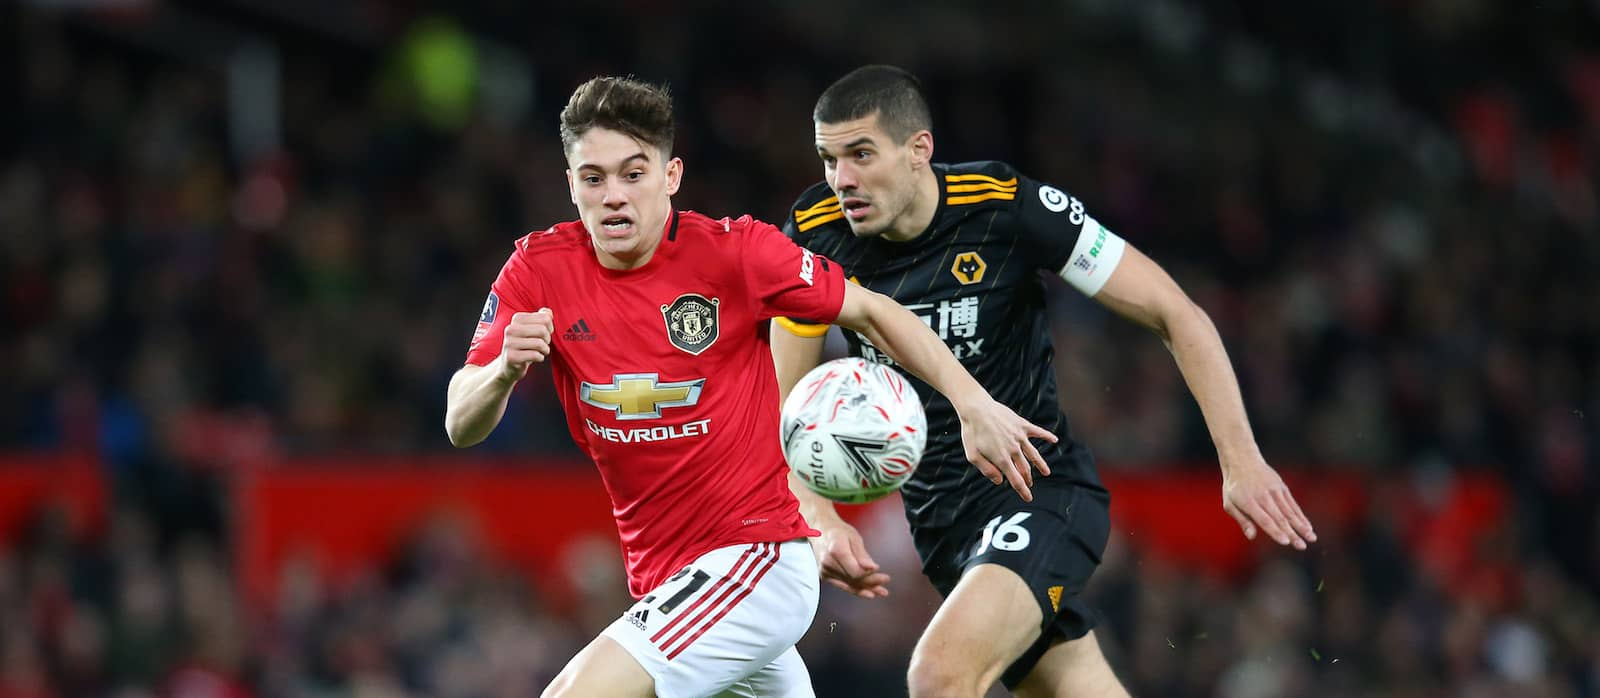 Player ratings: Manchester United 1-0 Wolverhampton Wanderers – Marcus Rashford injury overshadows victory